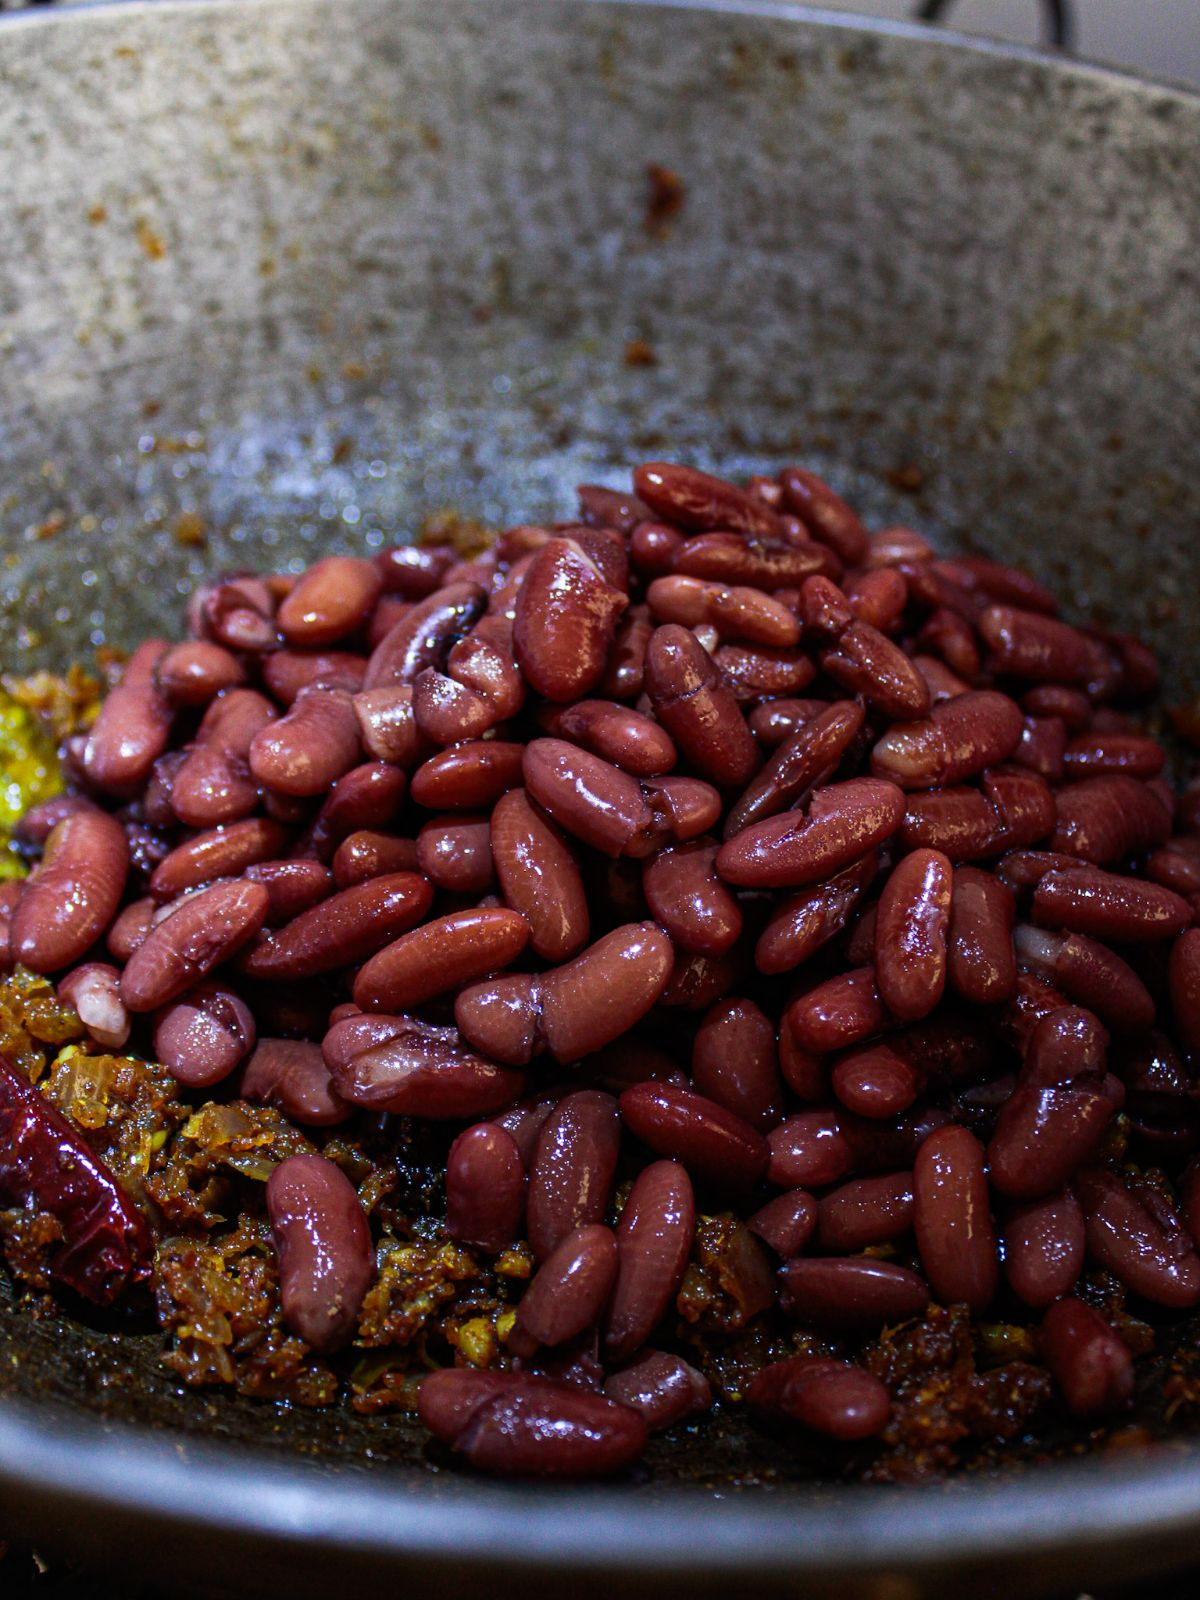 Kidney beans on top of curried spices and onions